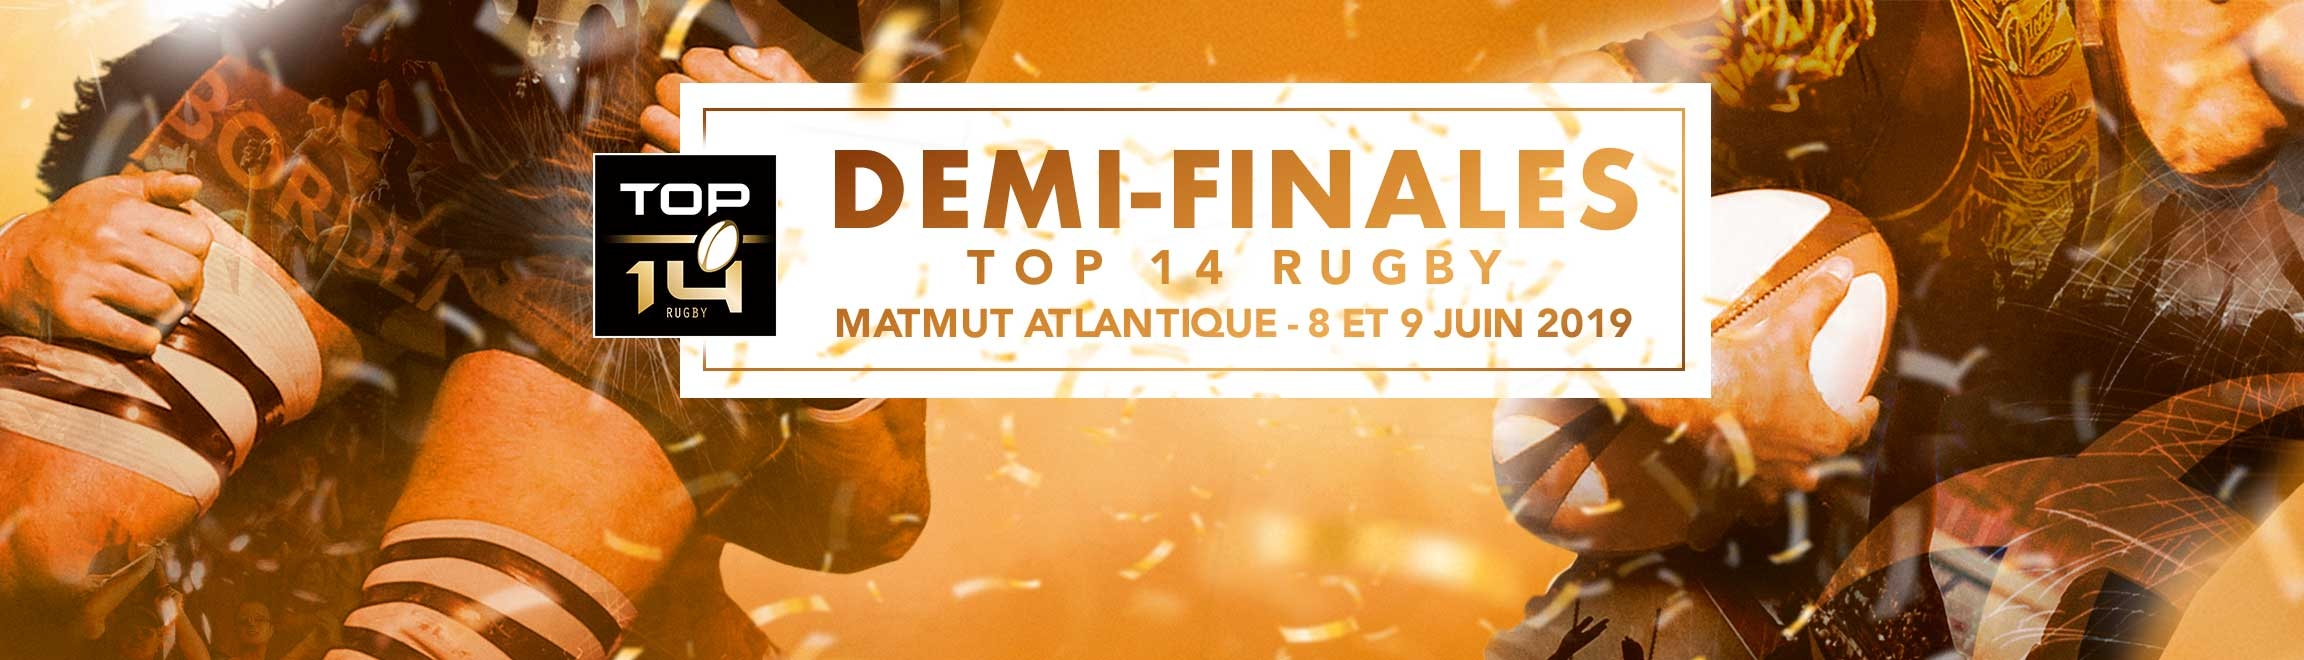 Demi-finales TOP 14 au Matmut ATLANTIQUE (Bordeaux) en 2019